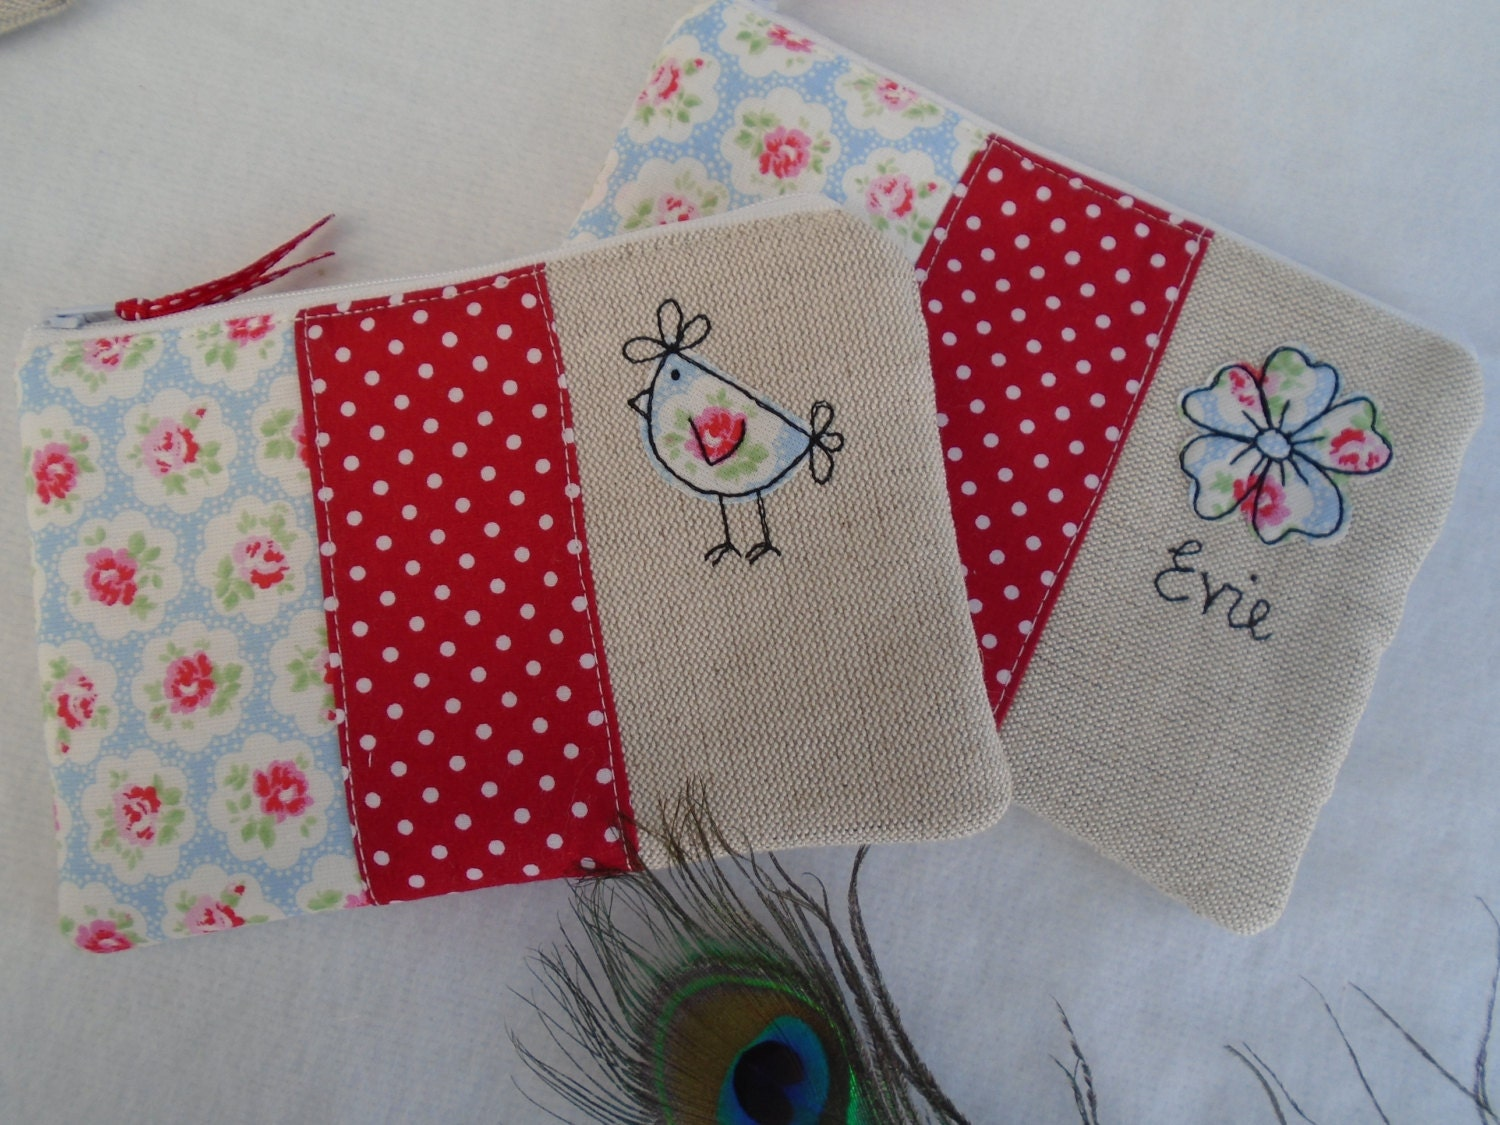 Handmade Cosmetic Makeup Bag or Purse with choice of design and option to personalise Choice of Hen or Flower Design Cath Kidston fabric